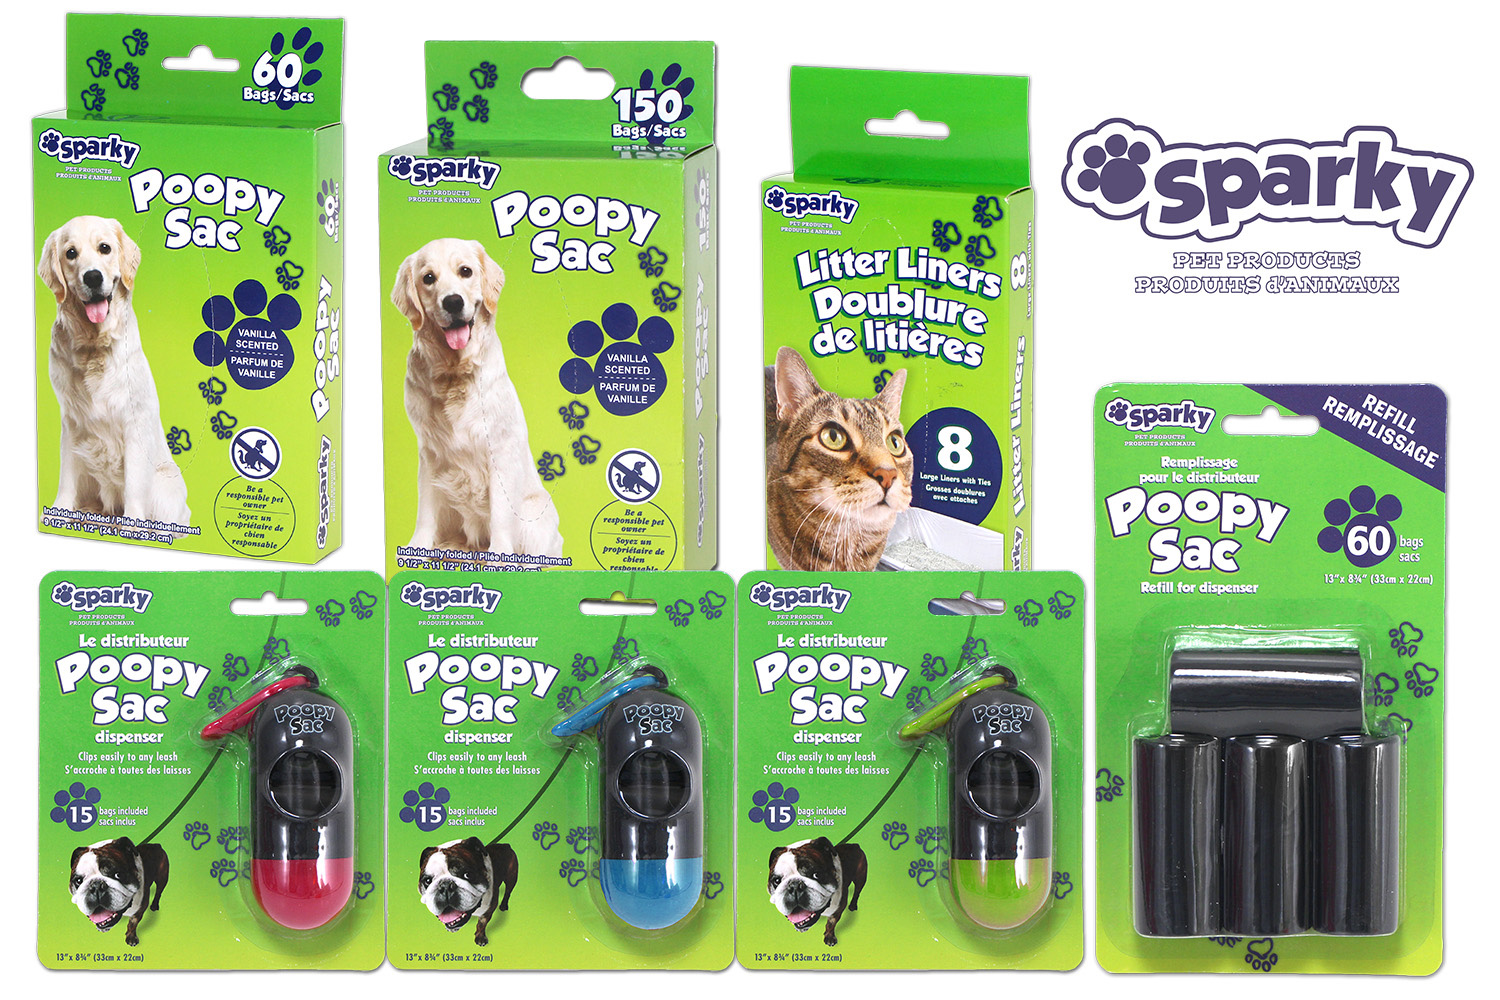 Pet Products Produits D'animaux